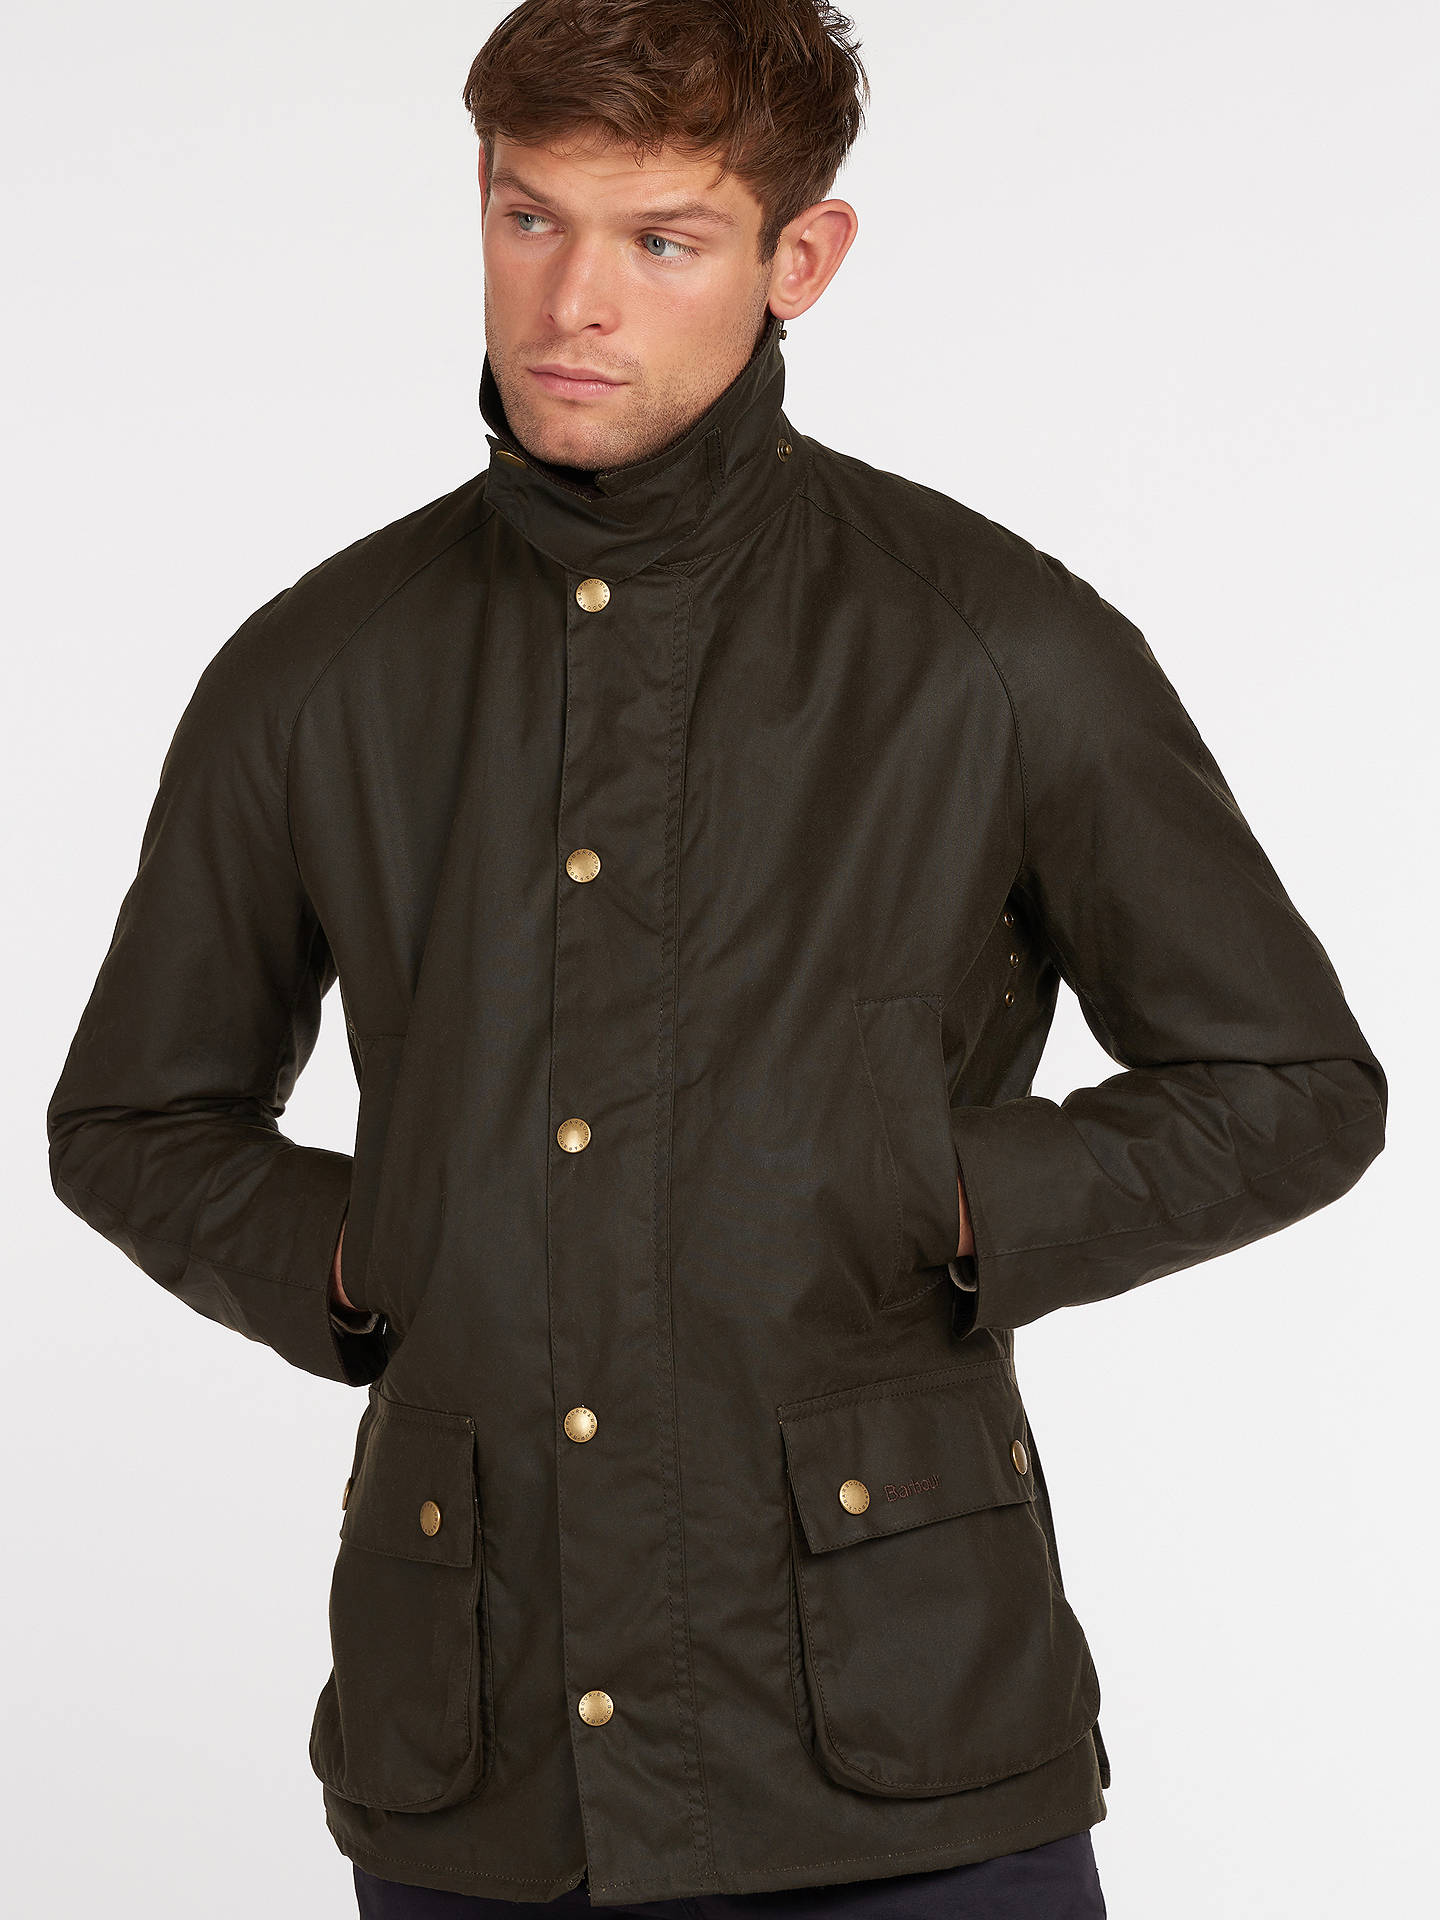 b5bfad112 Barbour Lifestyle Ashby Waxed Cotton Field Jacket, Olive